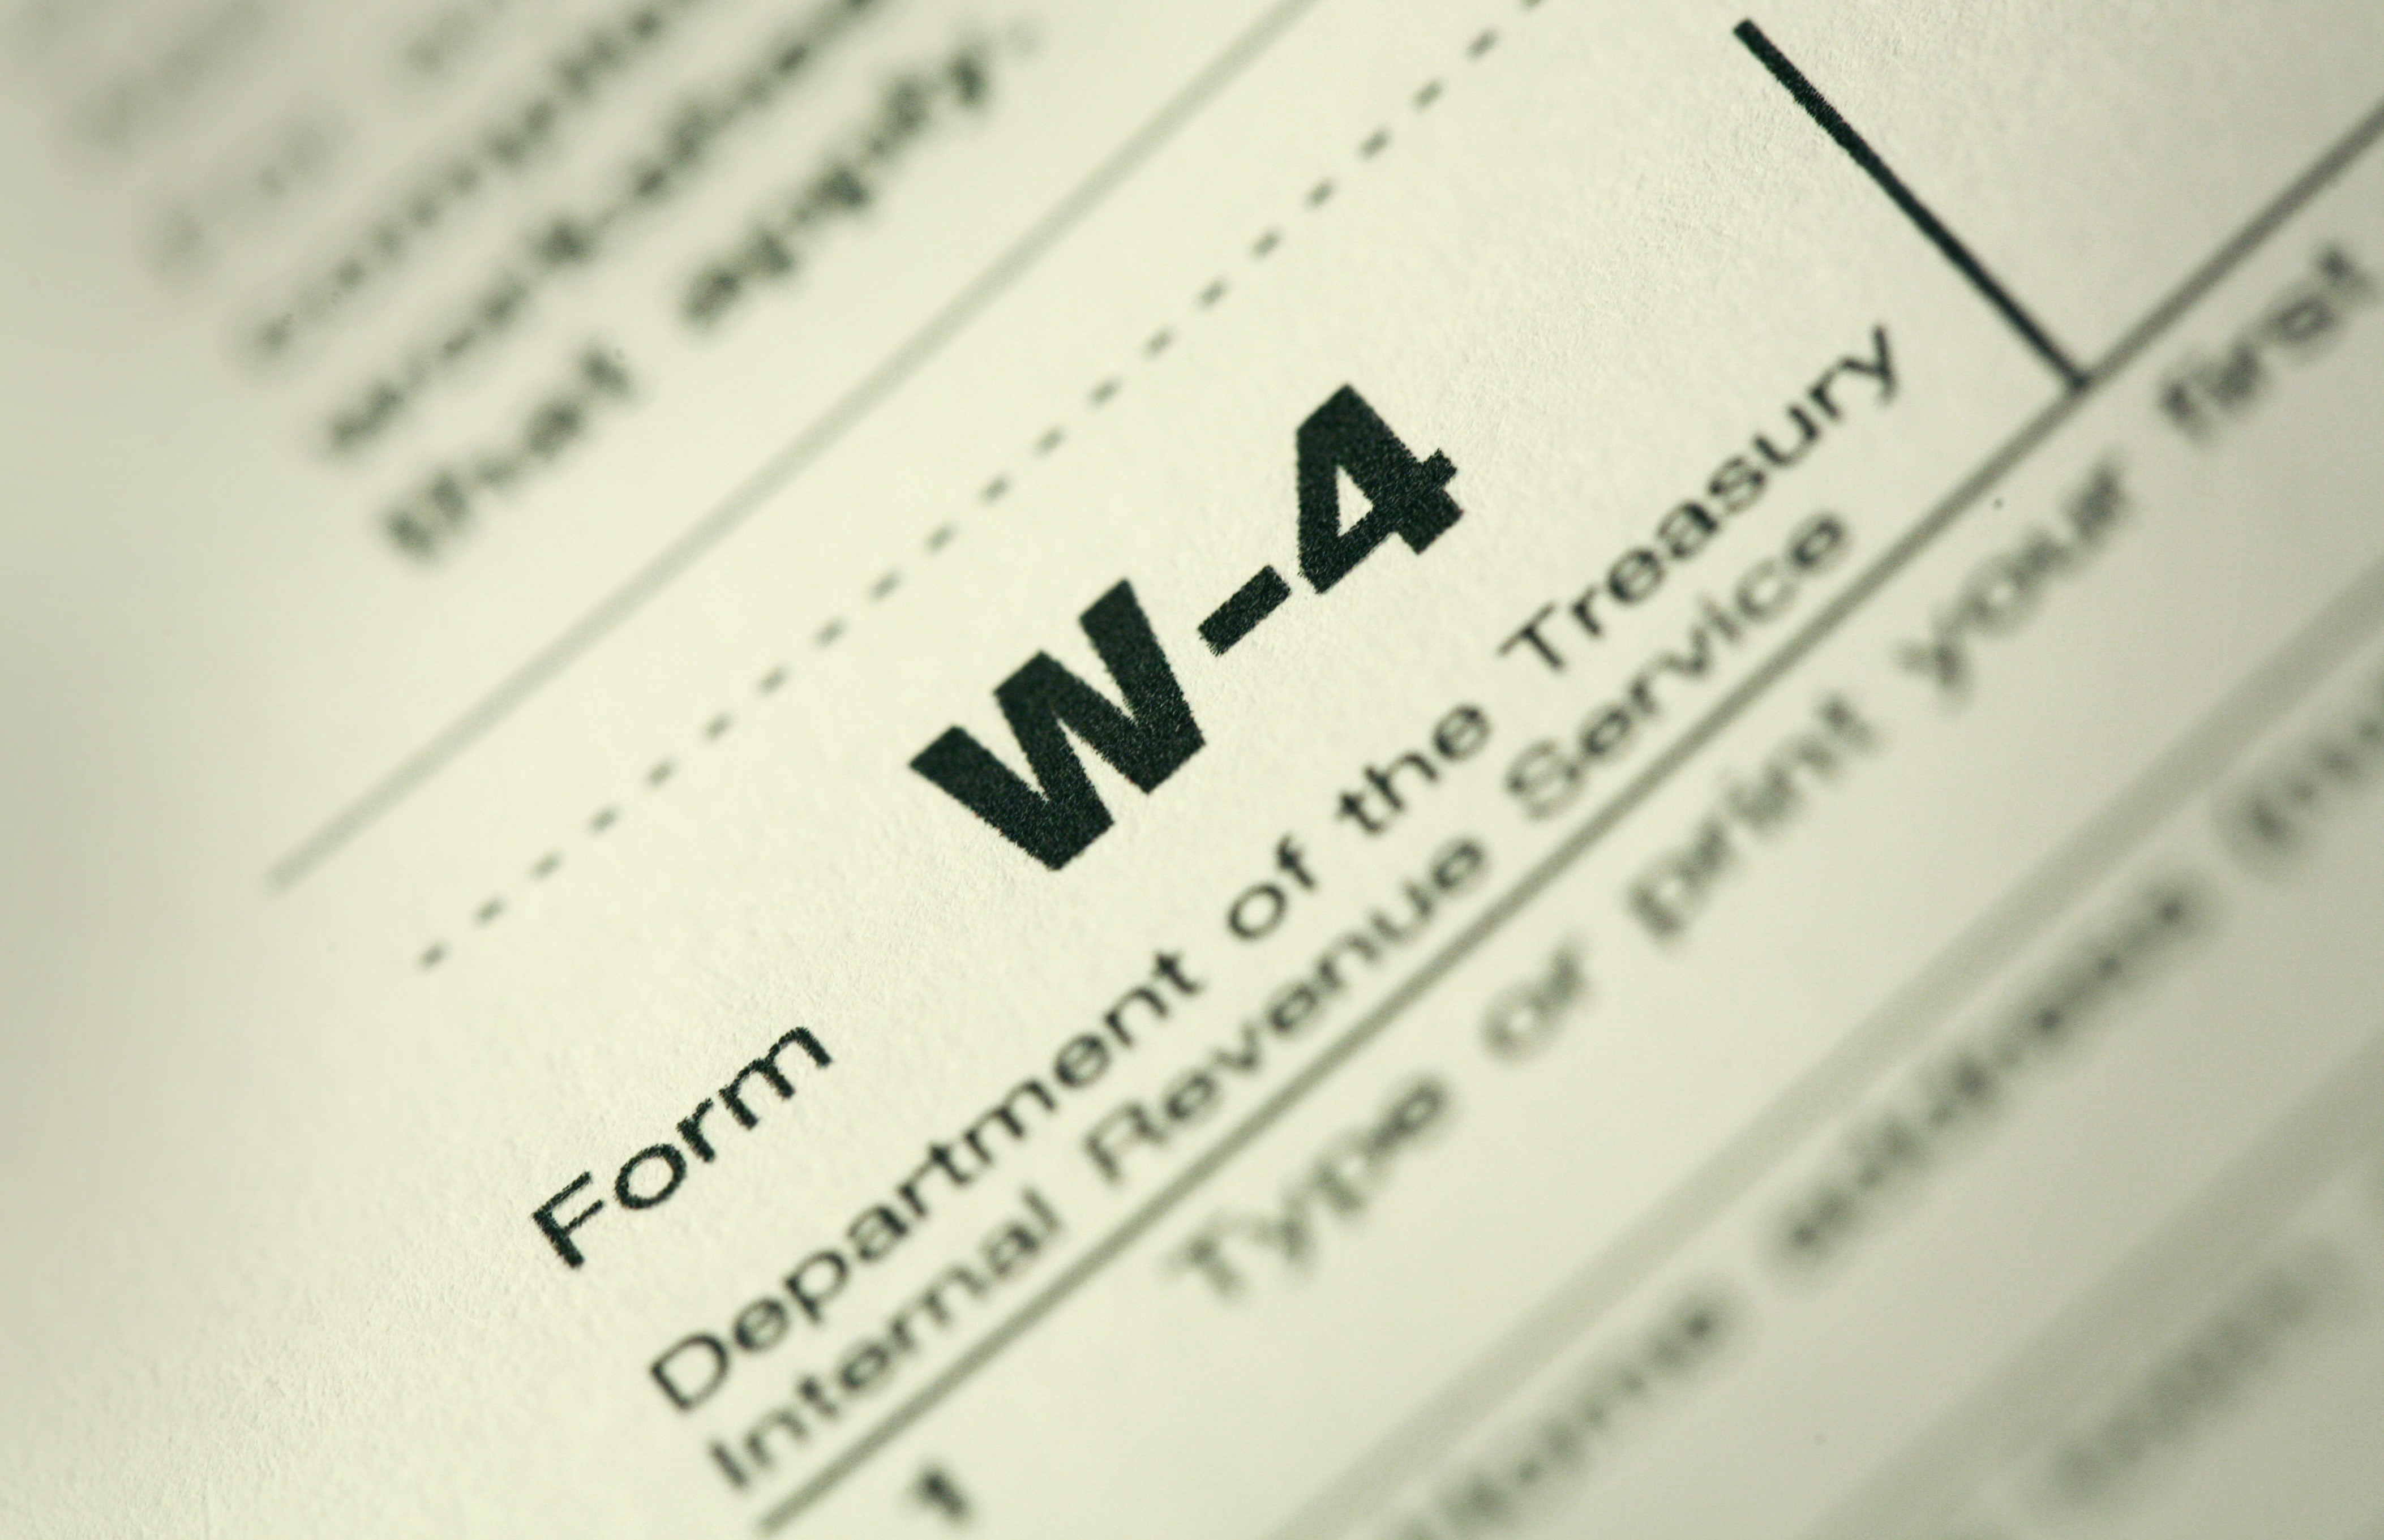 New 2020 W-4 tax form - What you need to know